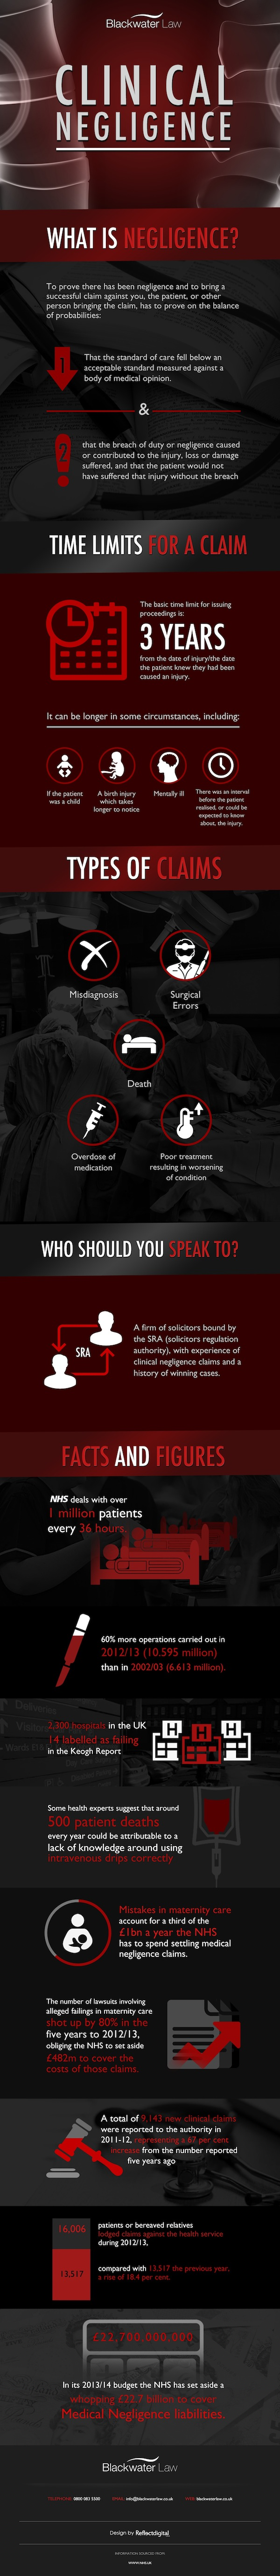 Clinical Negligence Infographic by Backwater Law